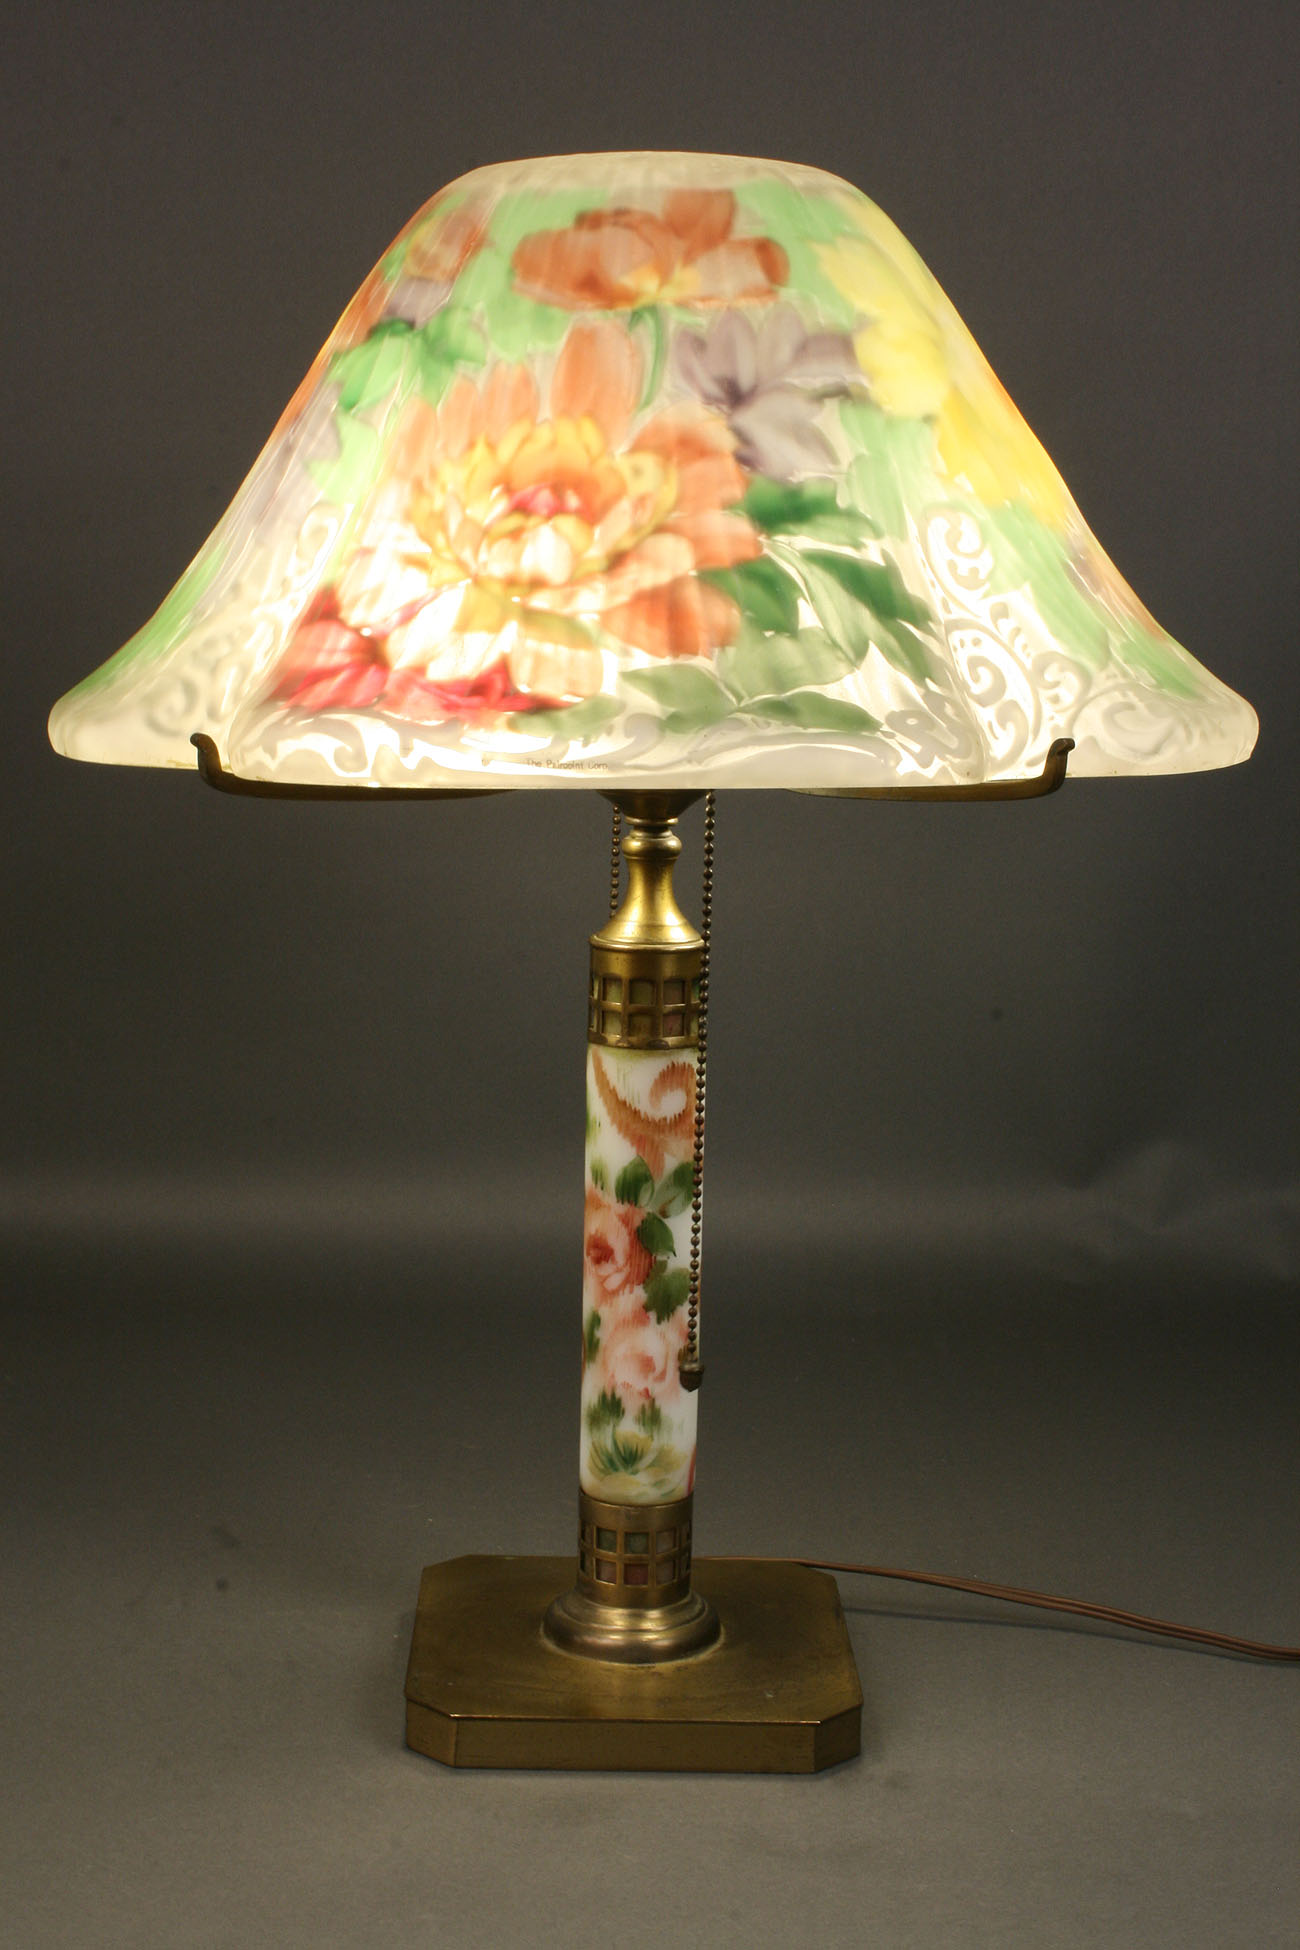 Lot 187 Pairpoint Puffy Lamp